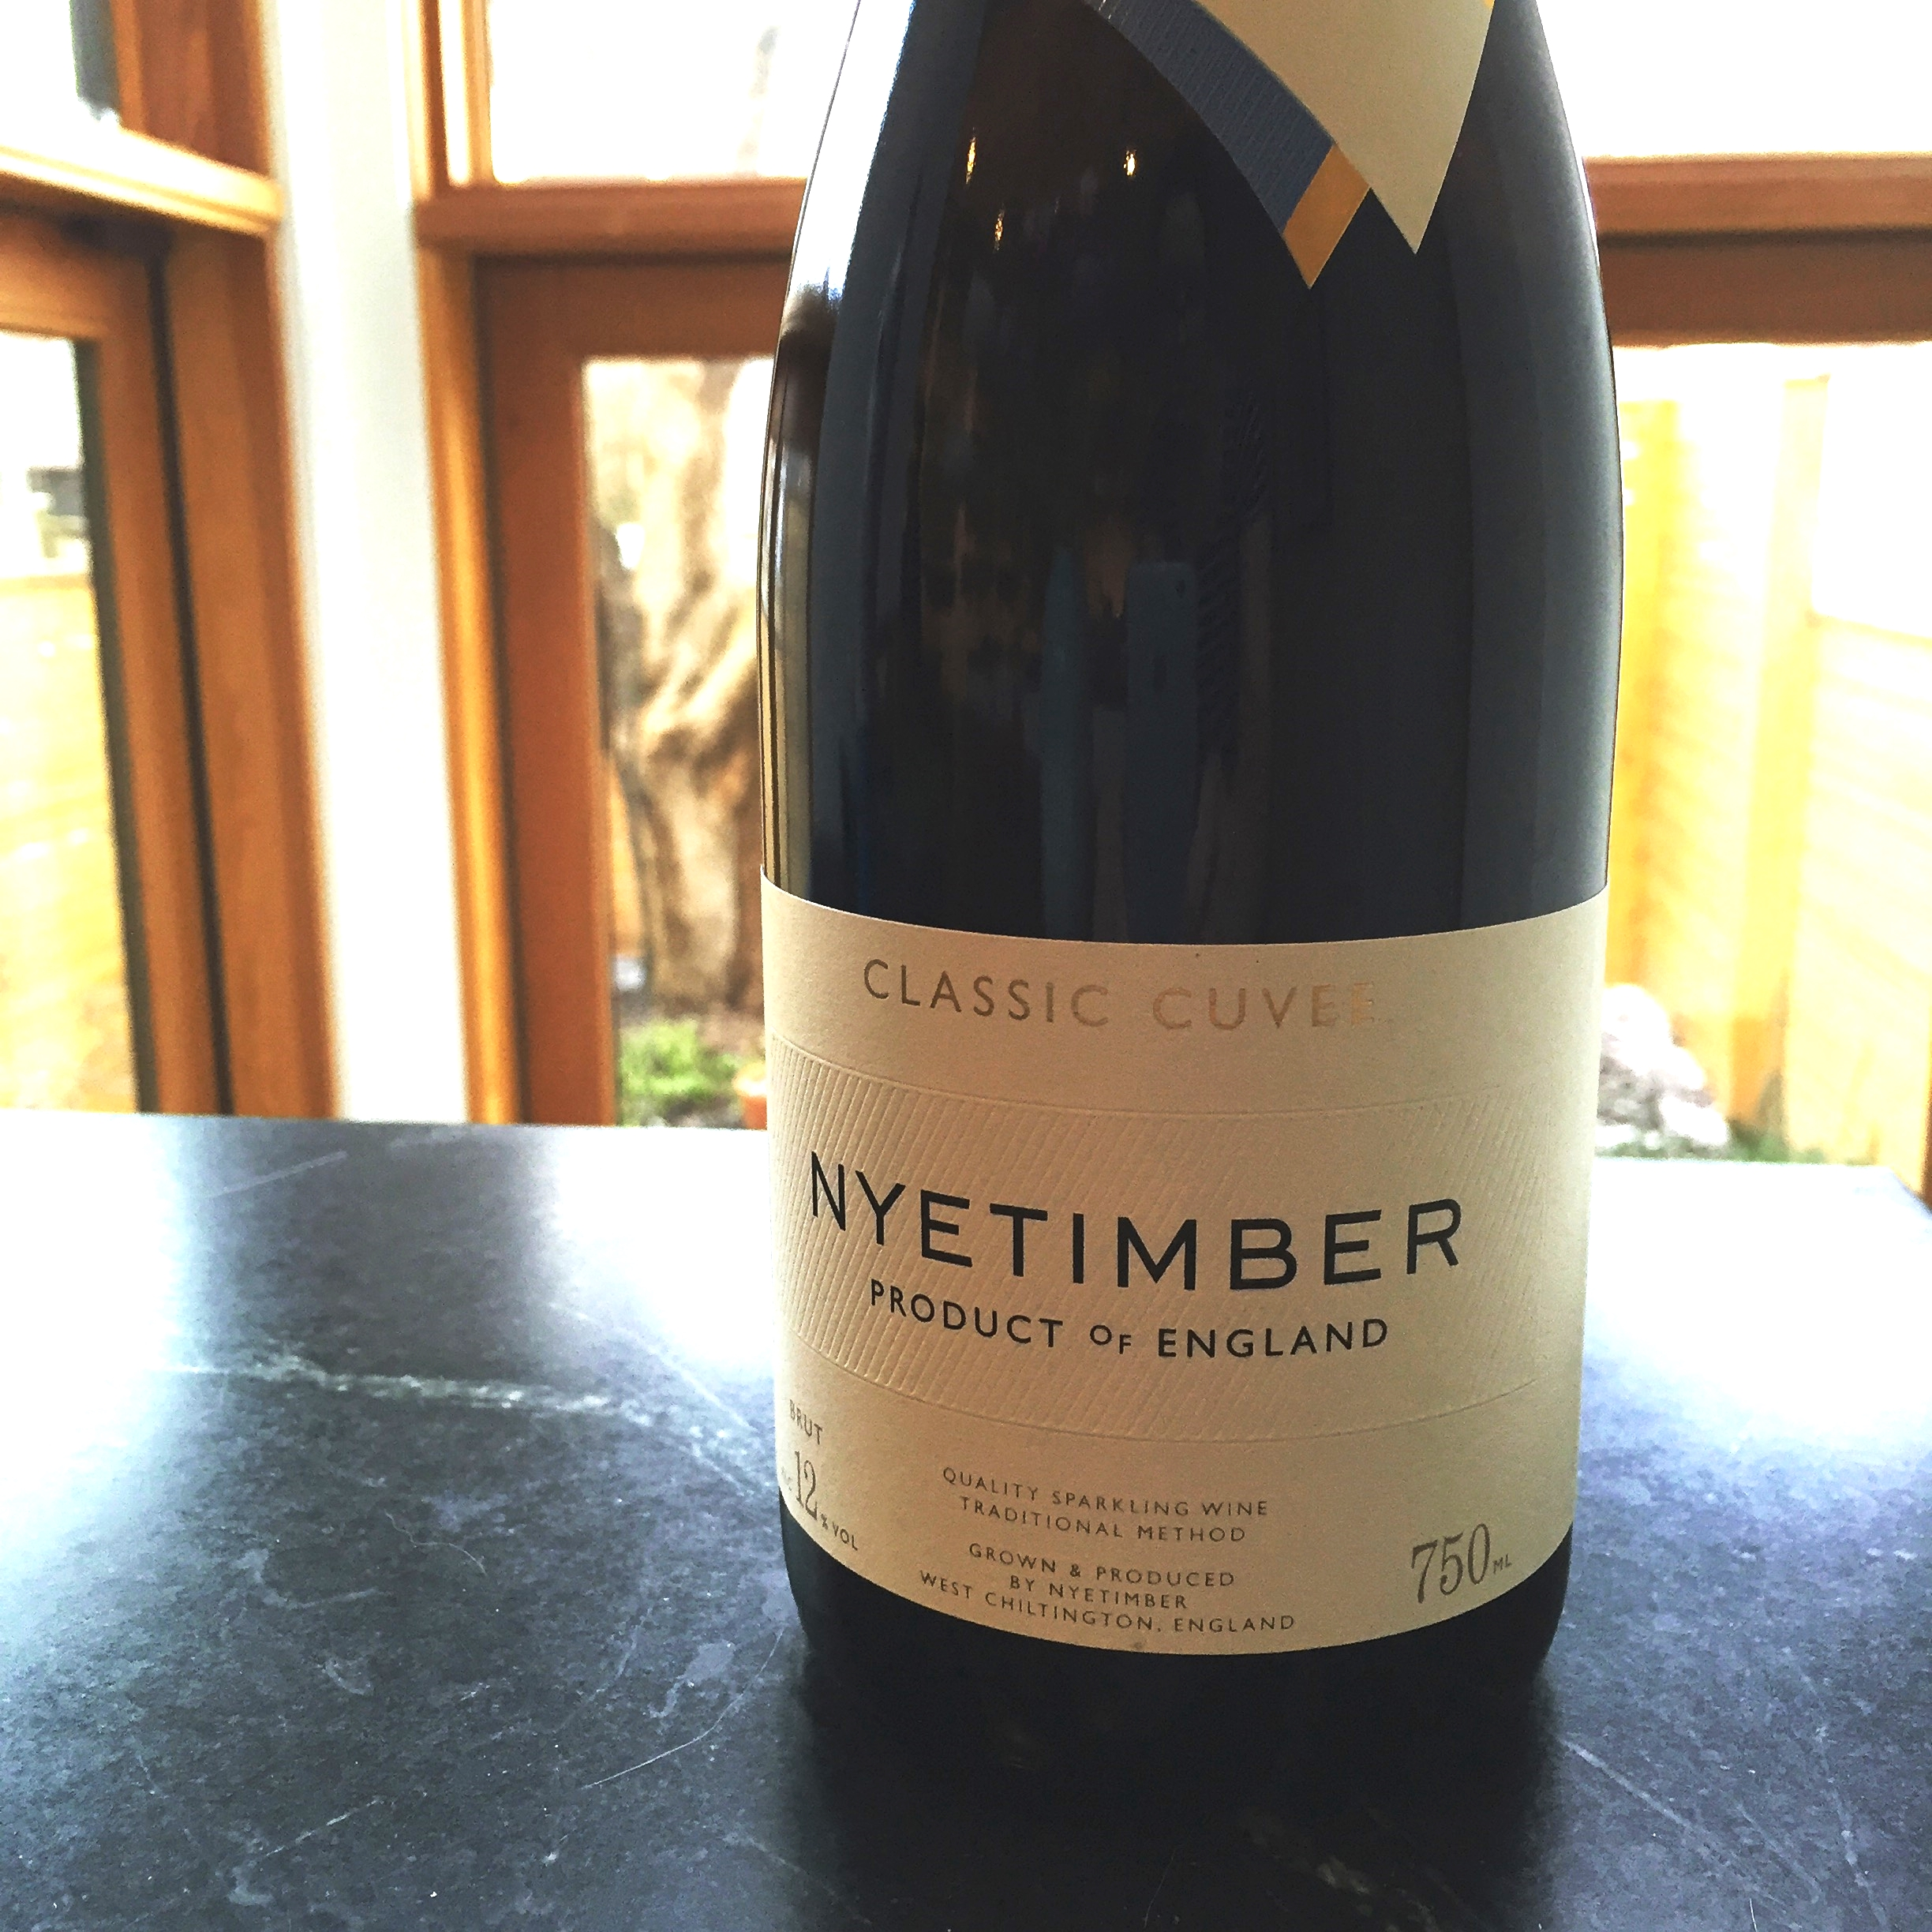 Nyetimber Classic Cuvee 2010 Traditional Method English Sparkling wine review